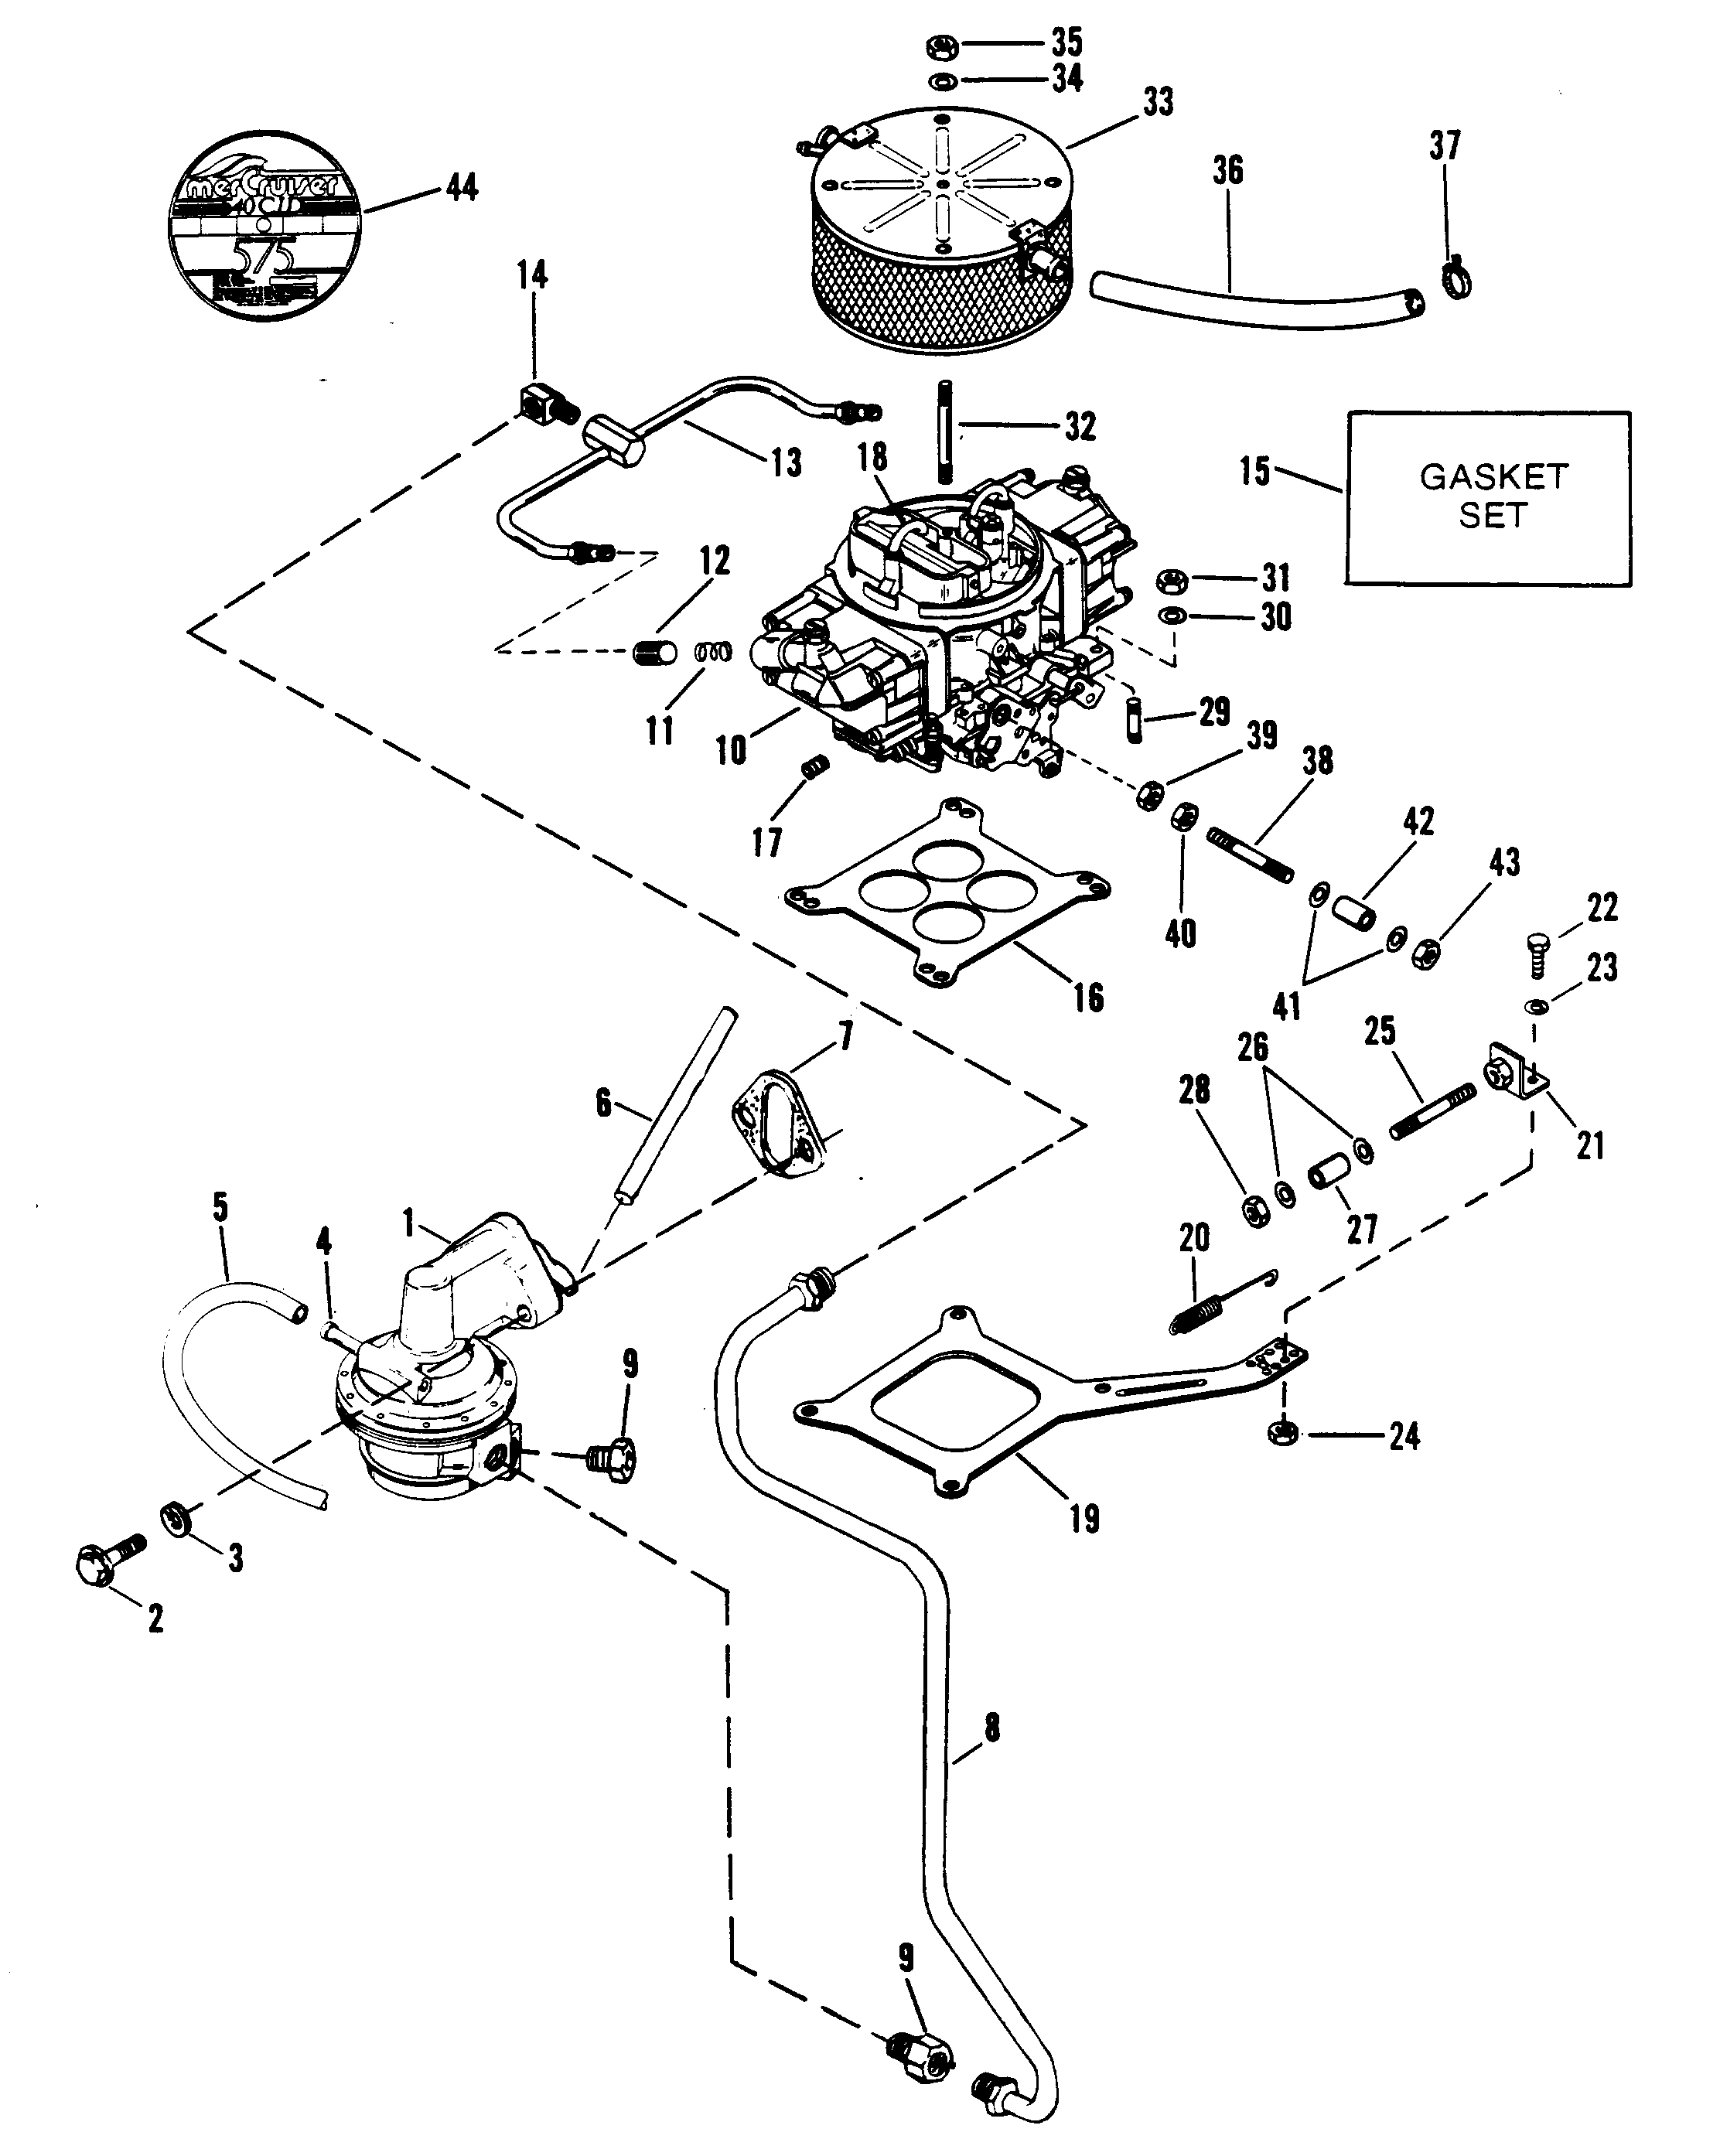 Cp Performance Fuel Pump Carburetor And Linkage Drawing Section Hover Or Click To View Larger